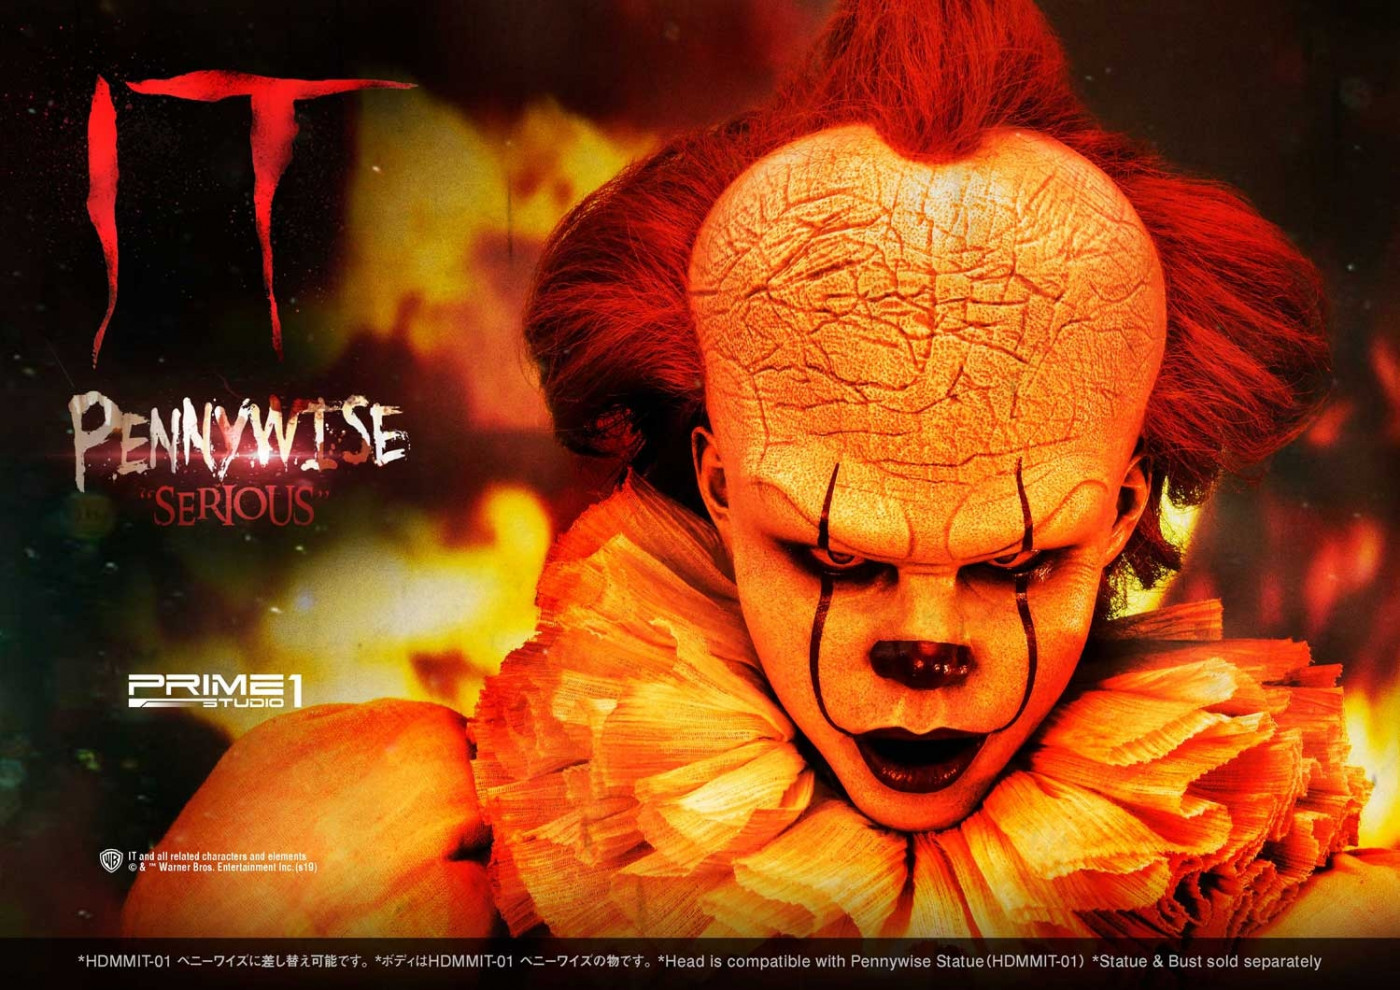 High Definition Bust IT (Film) Pennywise Serious